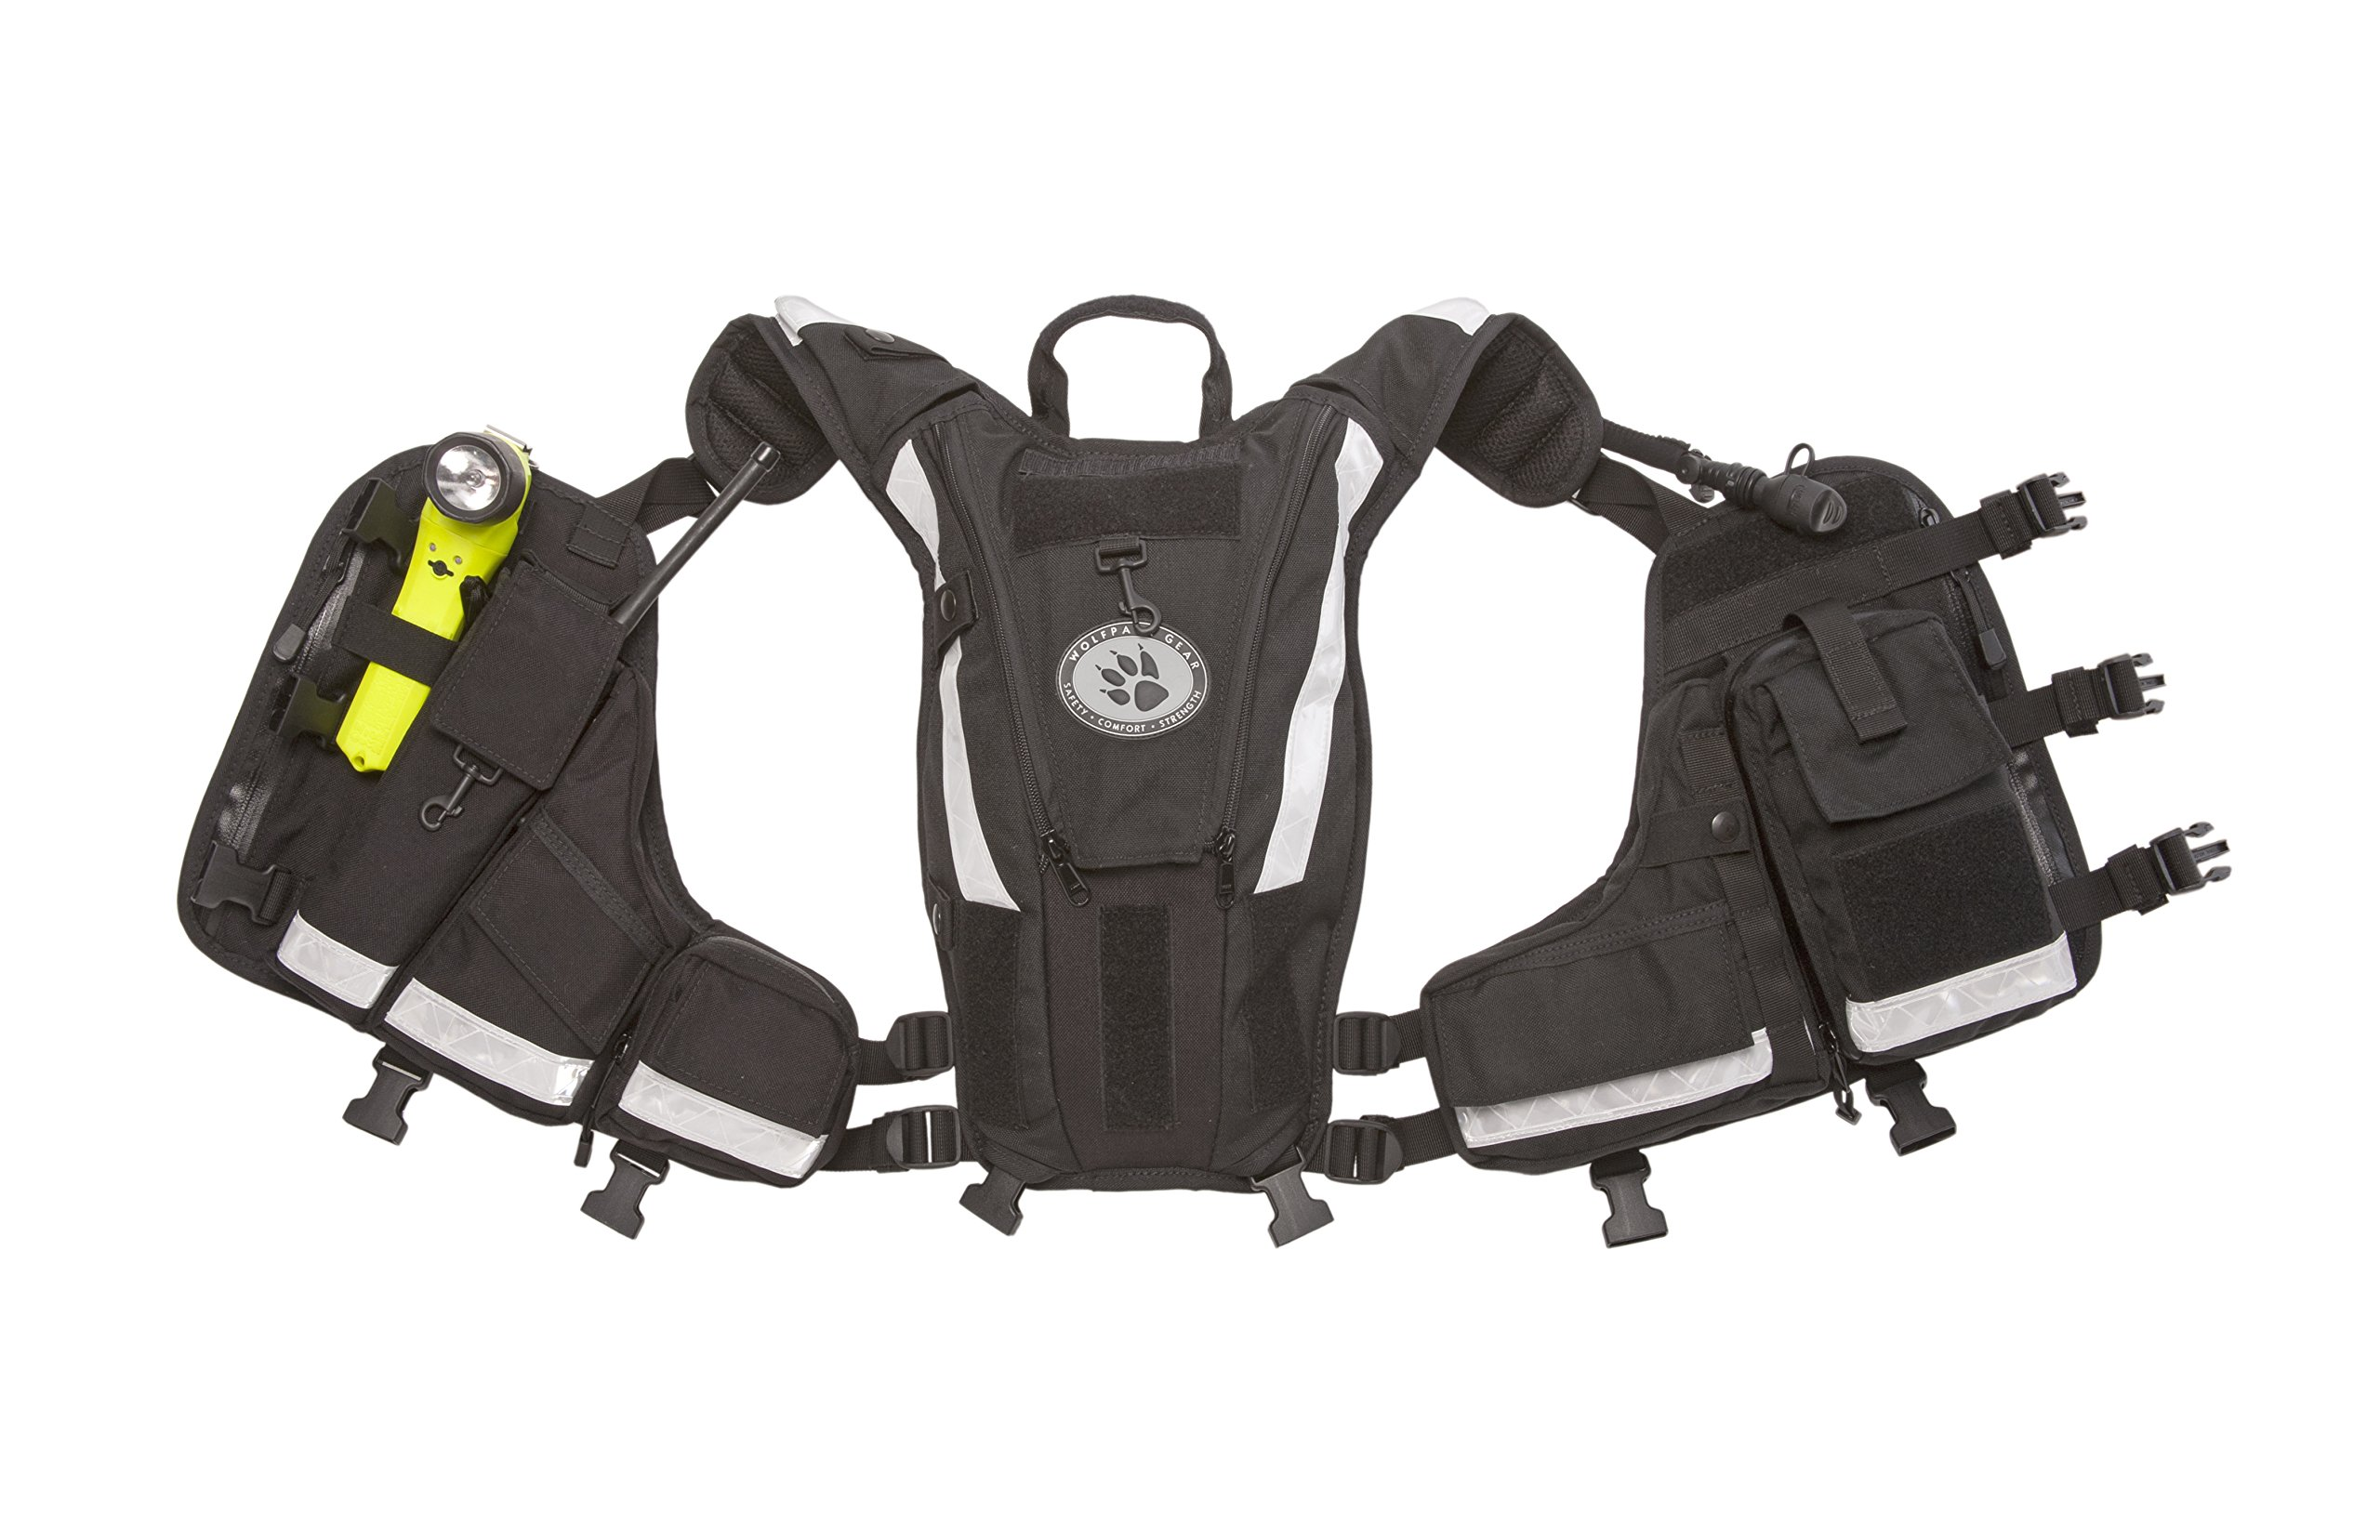 Wolfpack Gear Urban Search and Rescue Load Bearing Harness